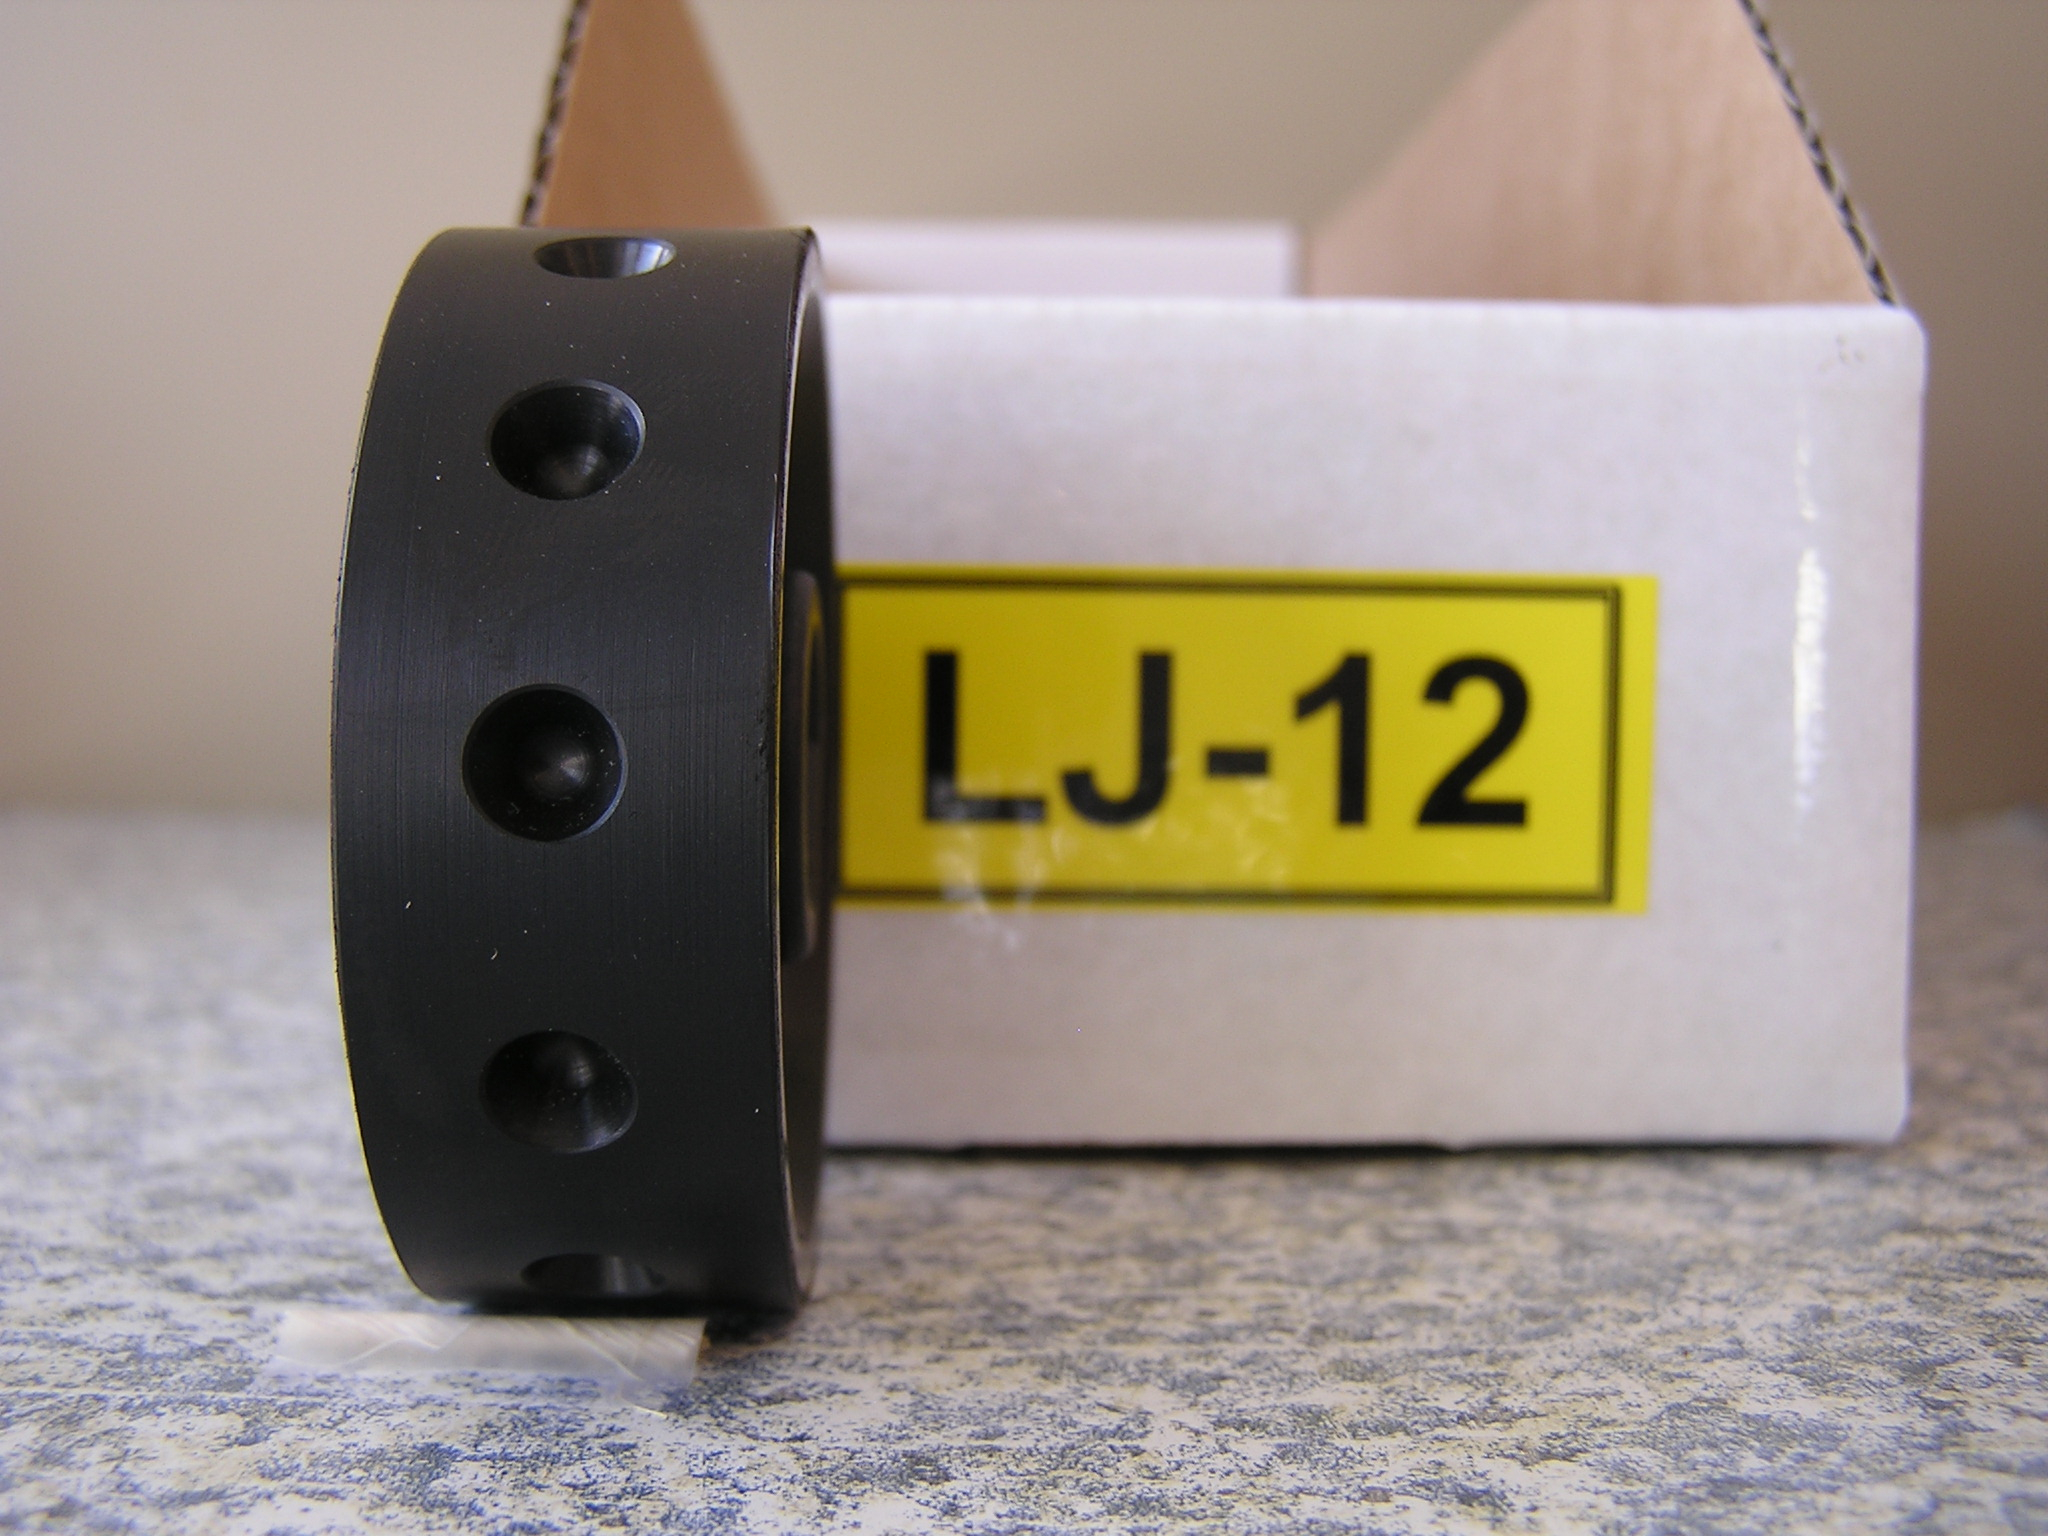 LJ-12 Roller for Jang Seeder, 7.5 mm, Deep Slot, 12 Slots on Roller